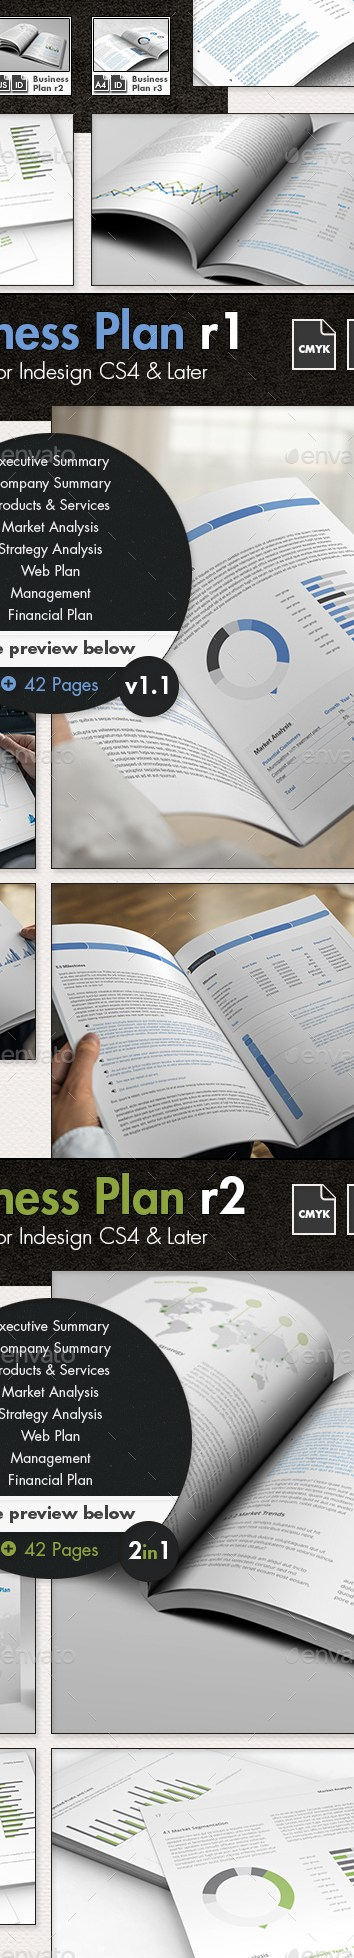 Grabs Full Pixels » The Business Plan Templates Bundle by sthalassinos   GraphicRiver The Business Plan Templates Bundle   Proposals   Invoices Stationery